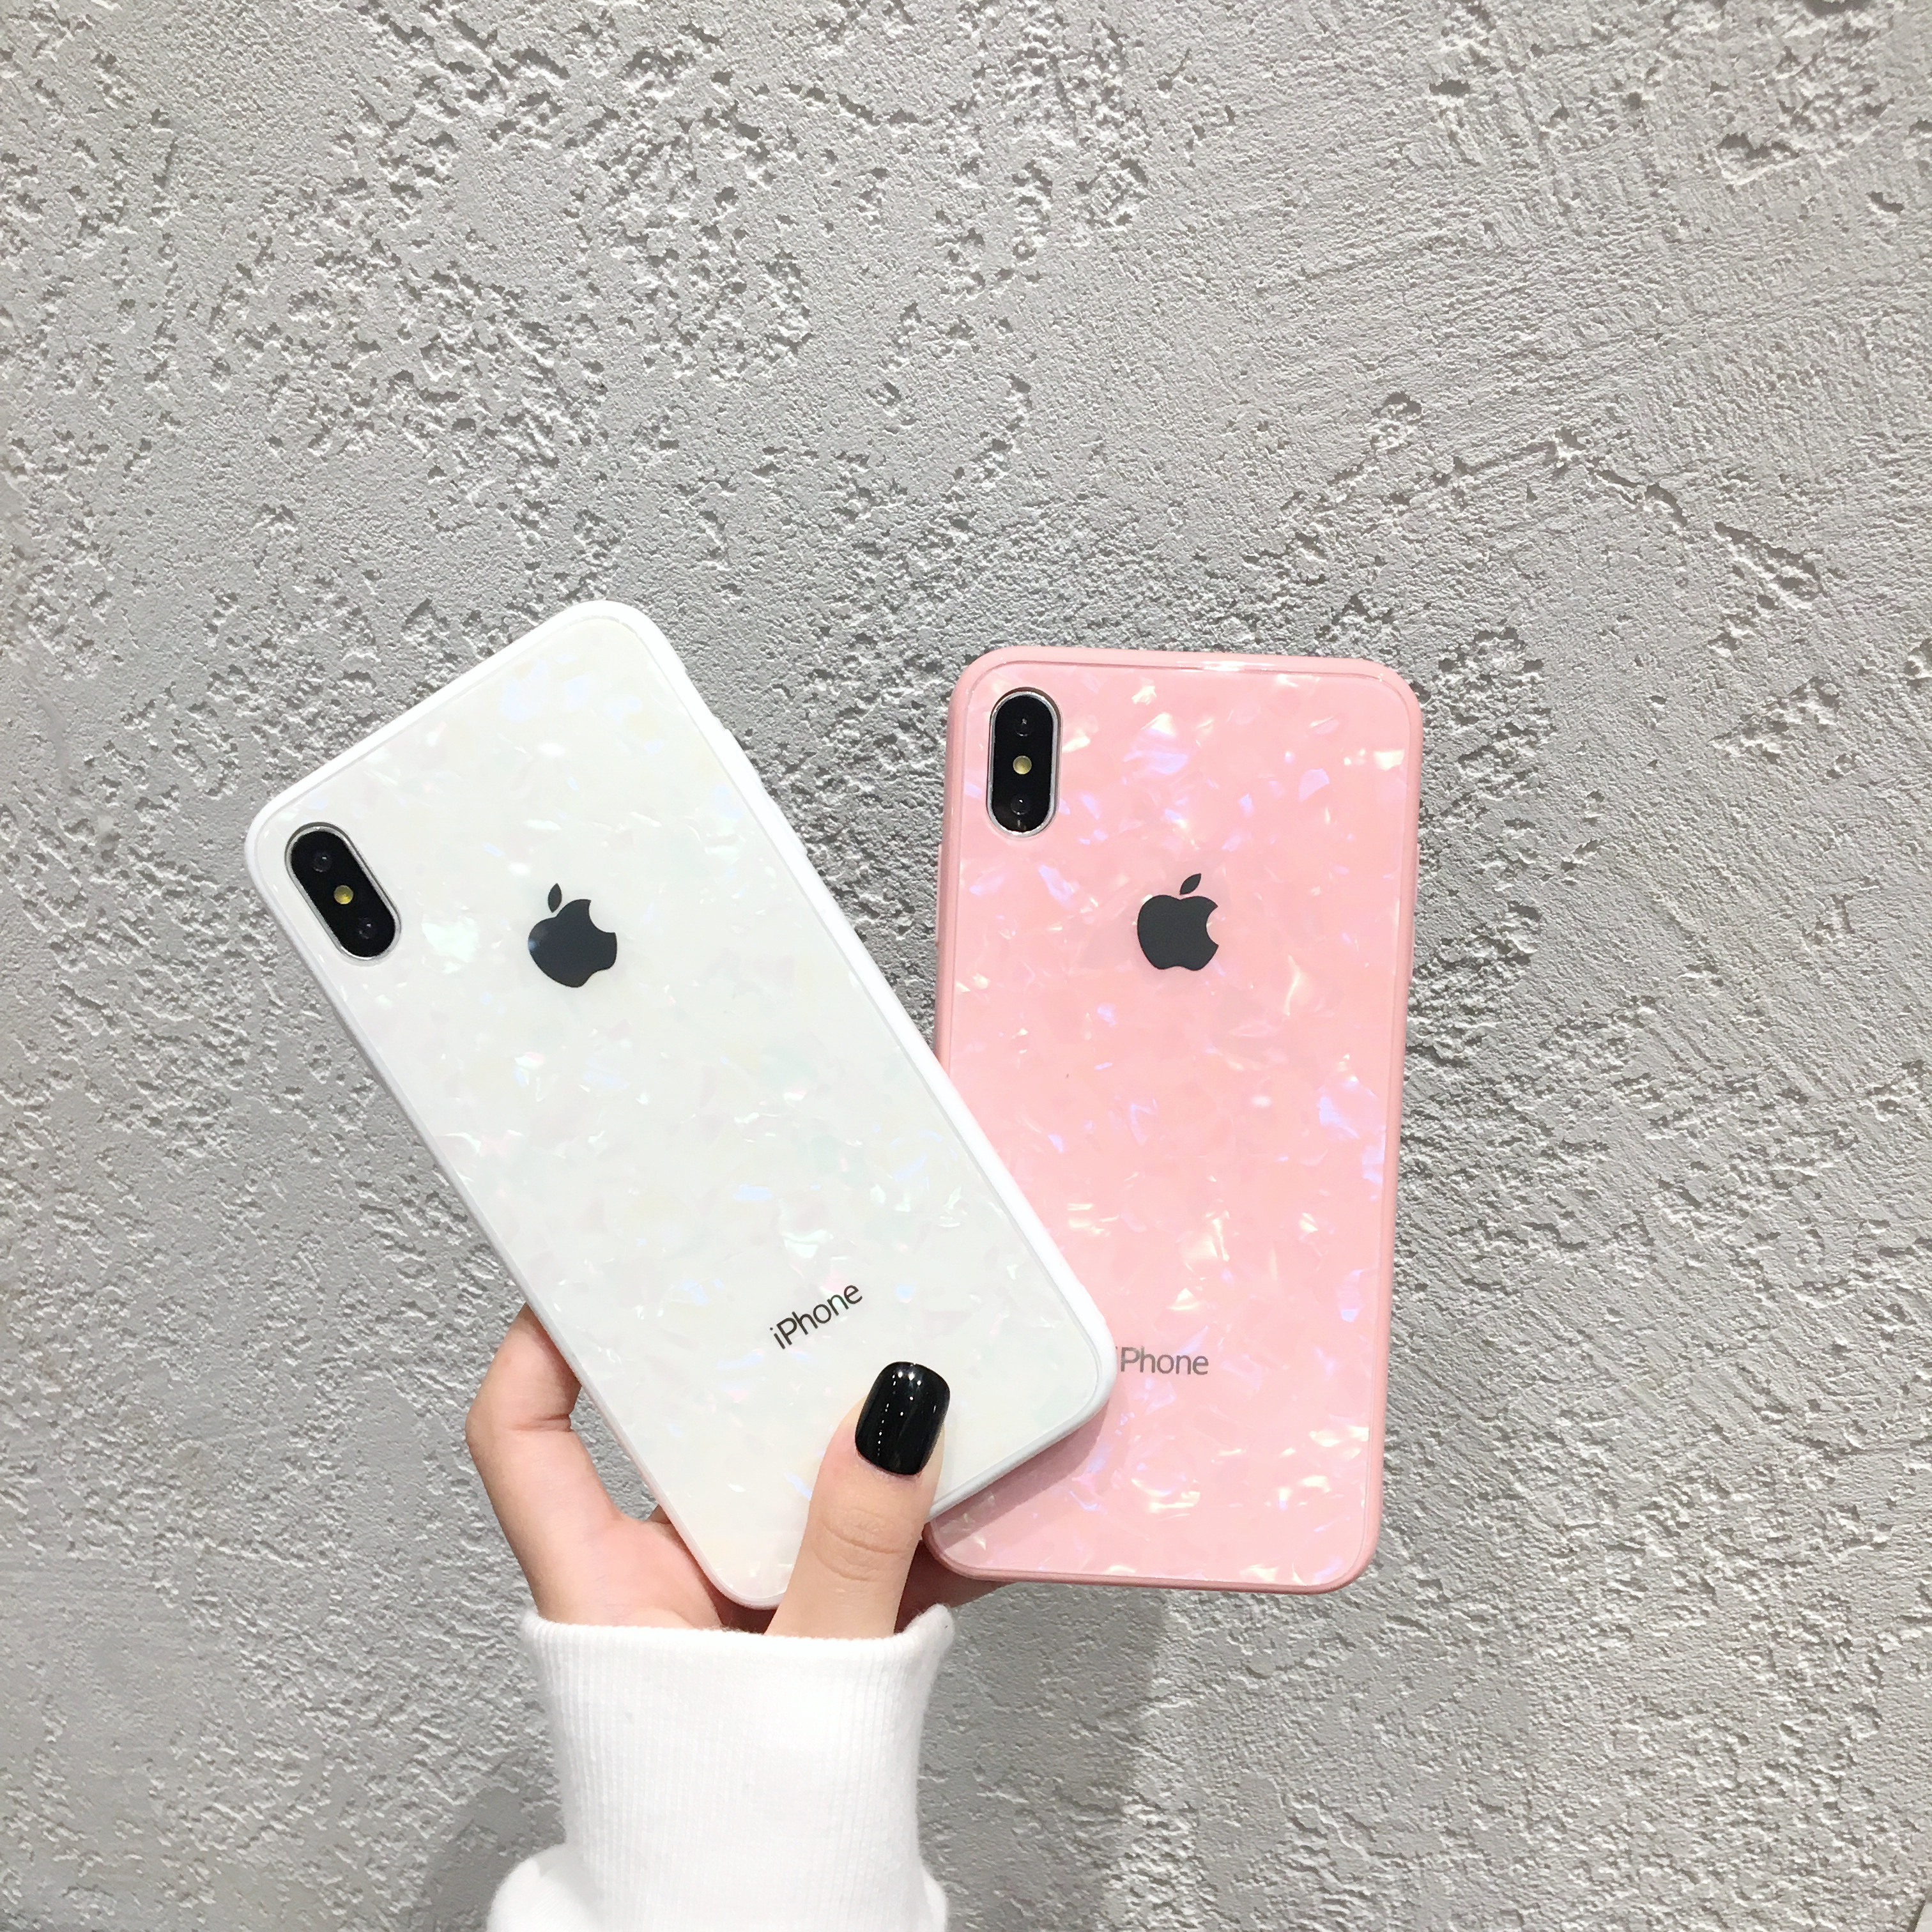 Tongkun Jungu iPhone All models iPhone 11 Pro Max iPhone XR iPhone XS MAX iPhone 6 iPhone 7 iPhone 8 Plus Marble Glass Case